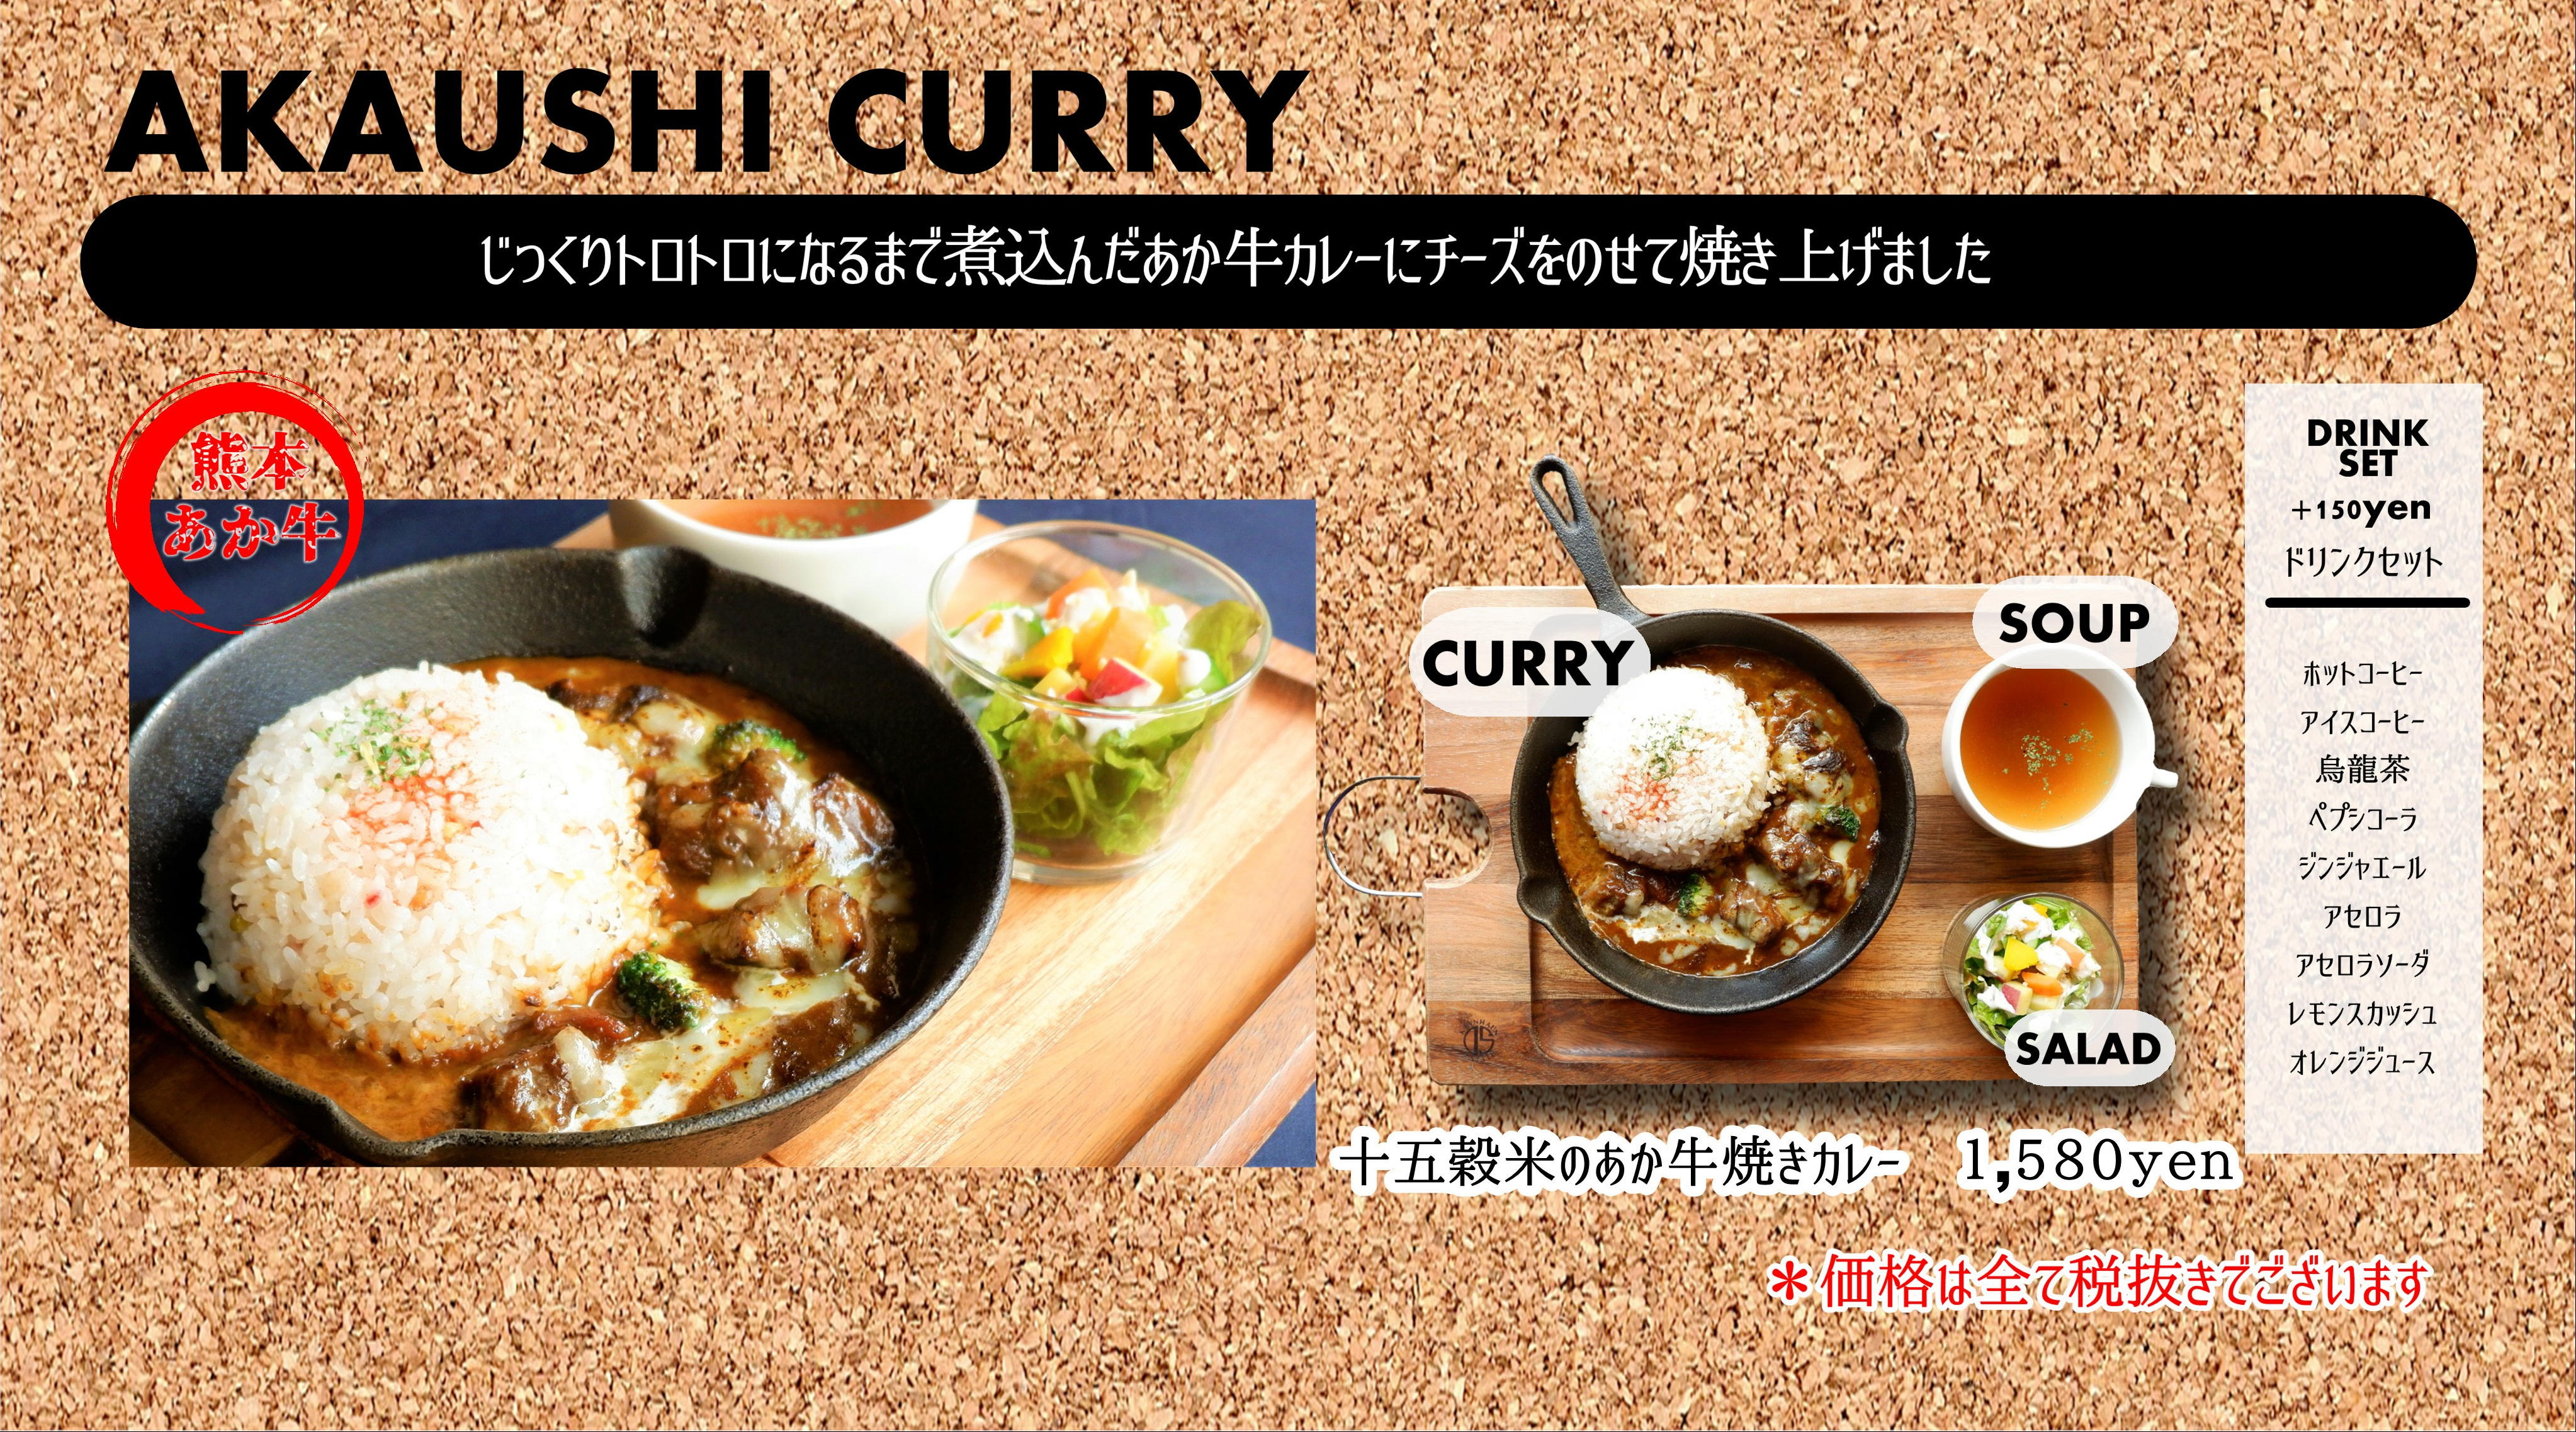 Lunch_AkaushiCurry